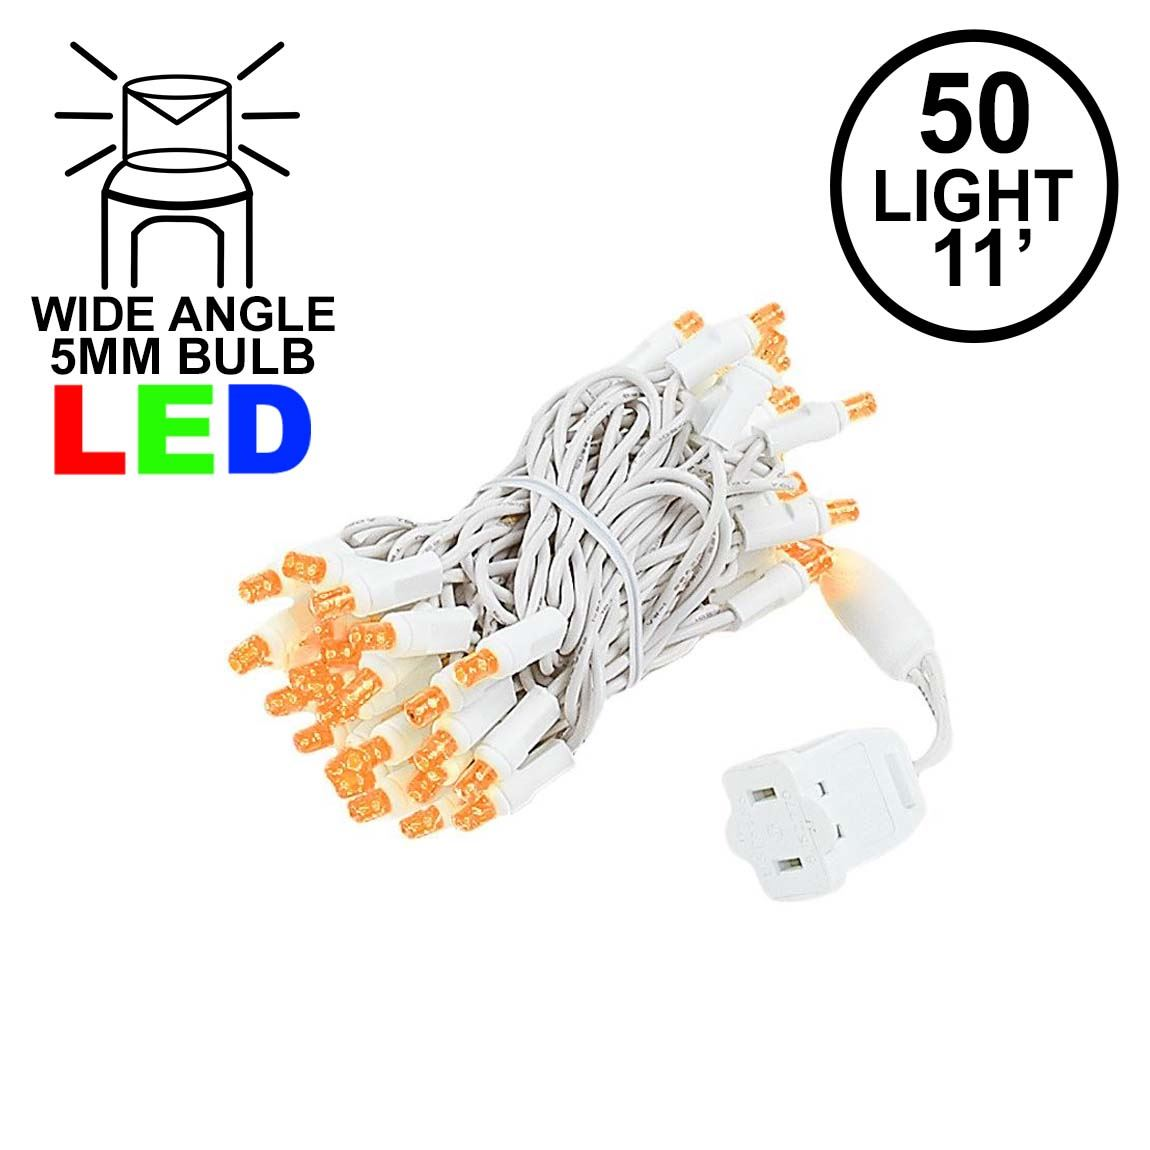 Picture of 50 LED Amber, White Wire LED Christmas Lights 11' Long